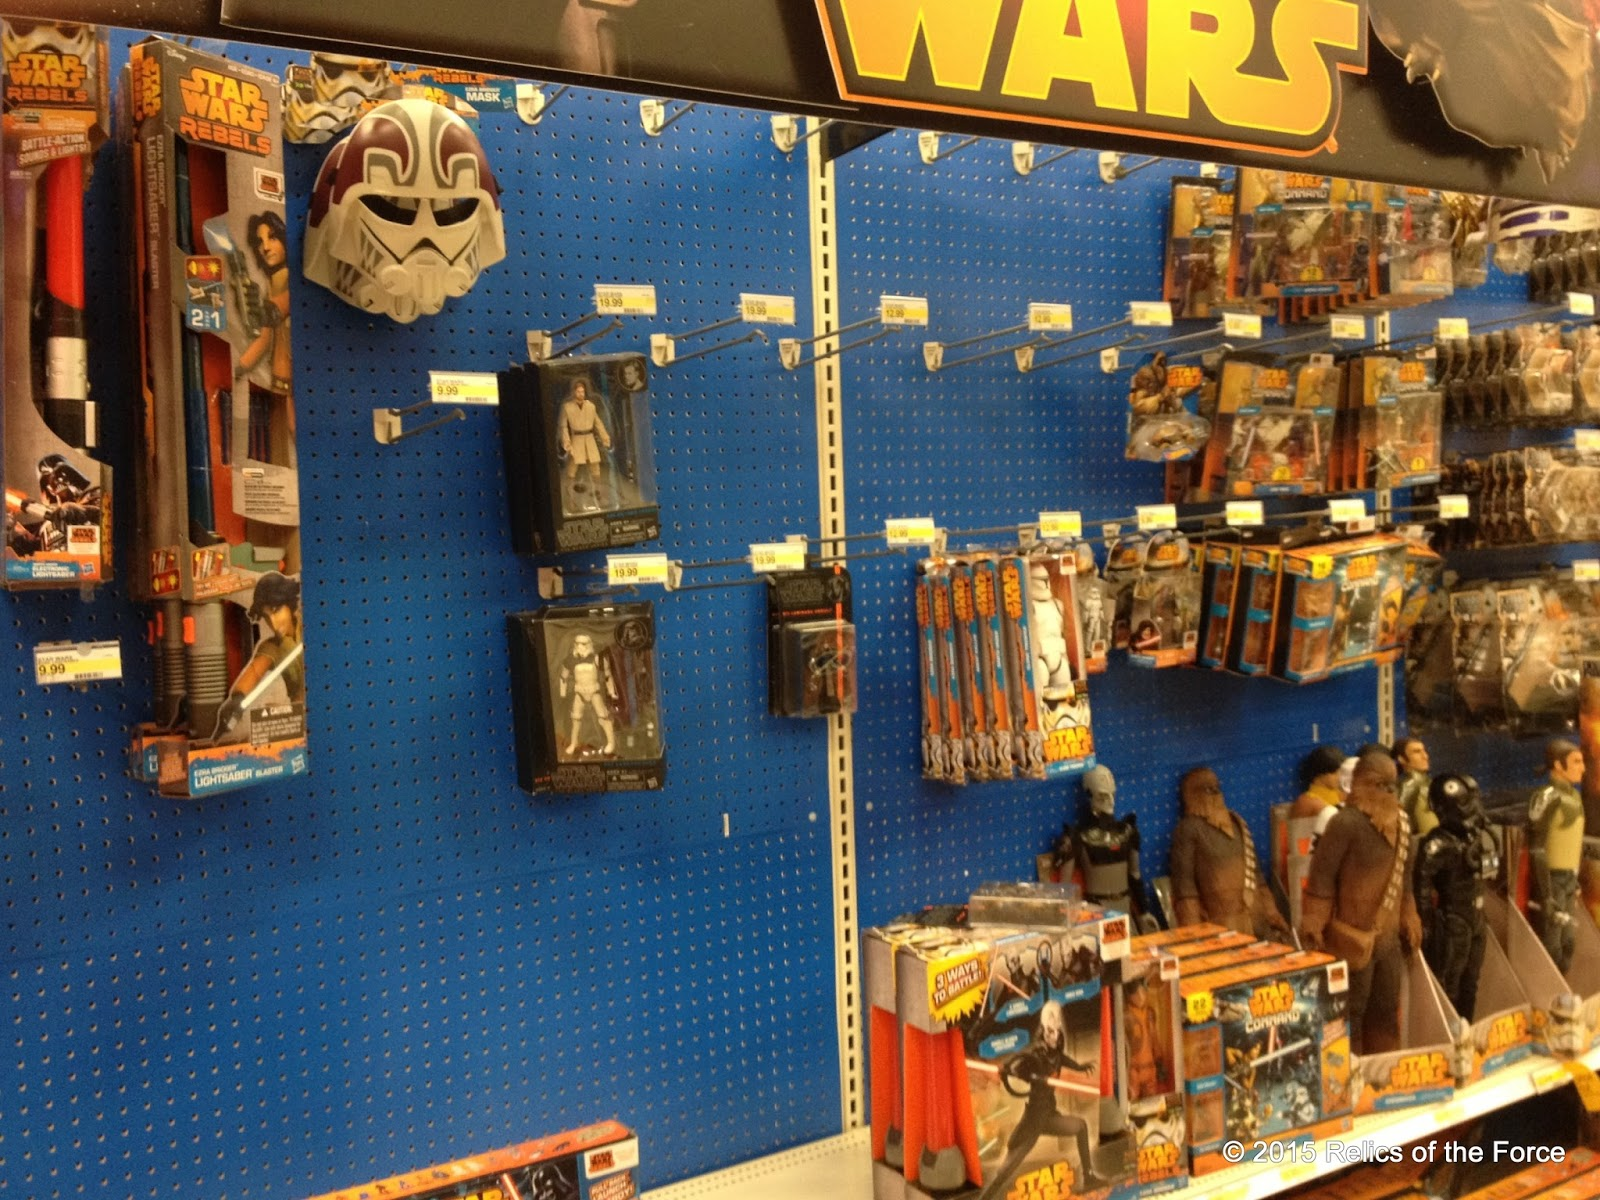 Target Toy Aisle The Star Wars Aisle at Target